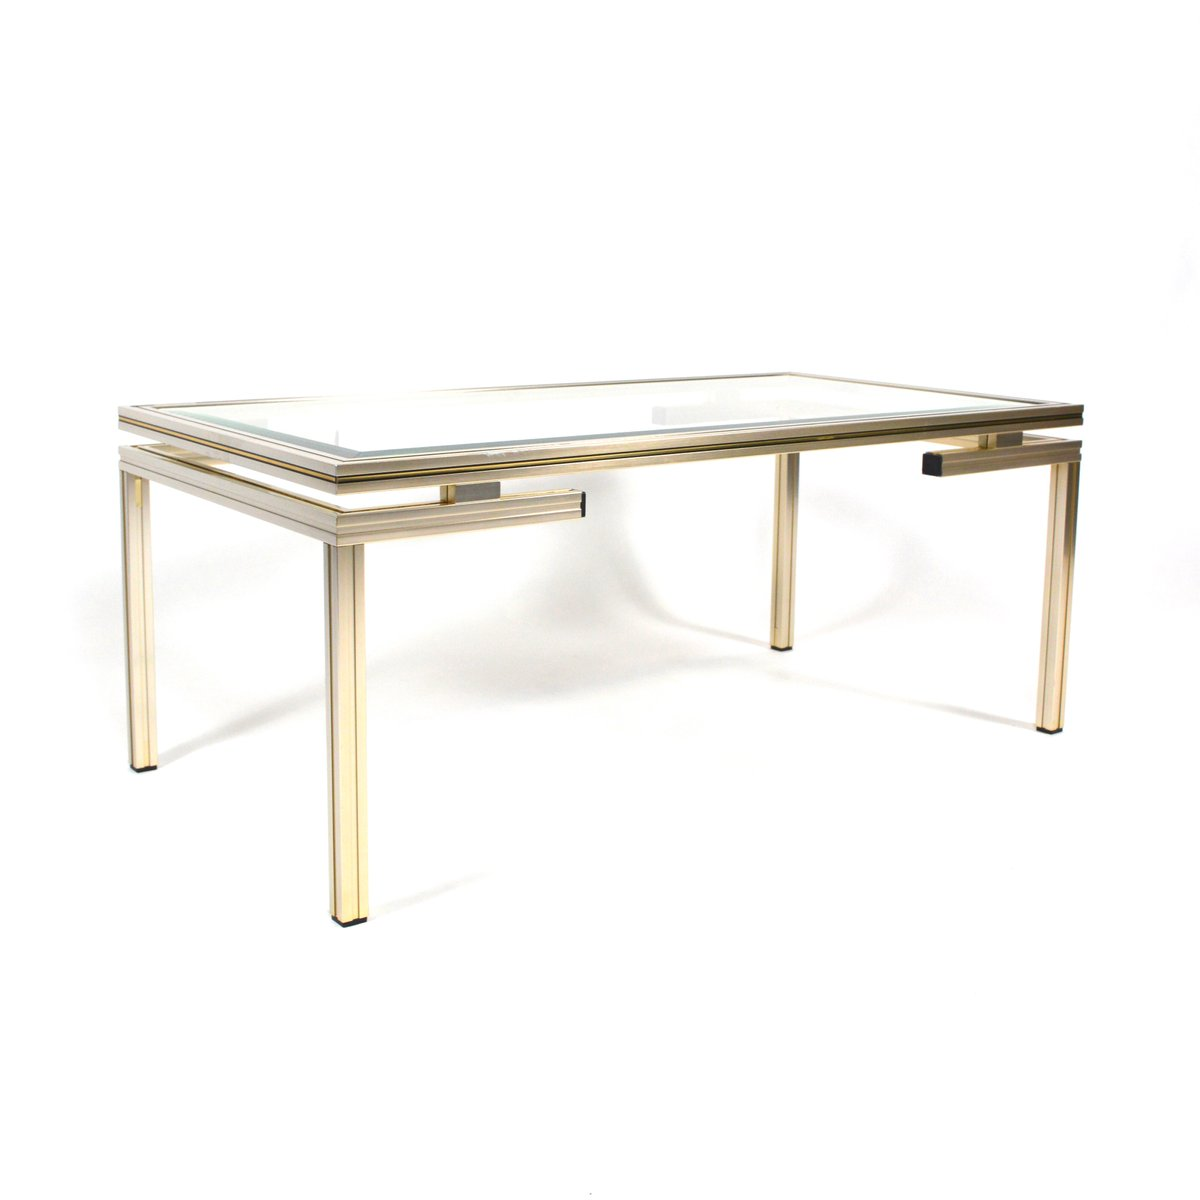 French Silver And Gold Coffee Table By Pierre Vandel 1970s For Sale At Pamono